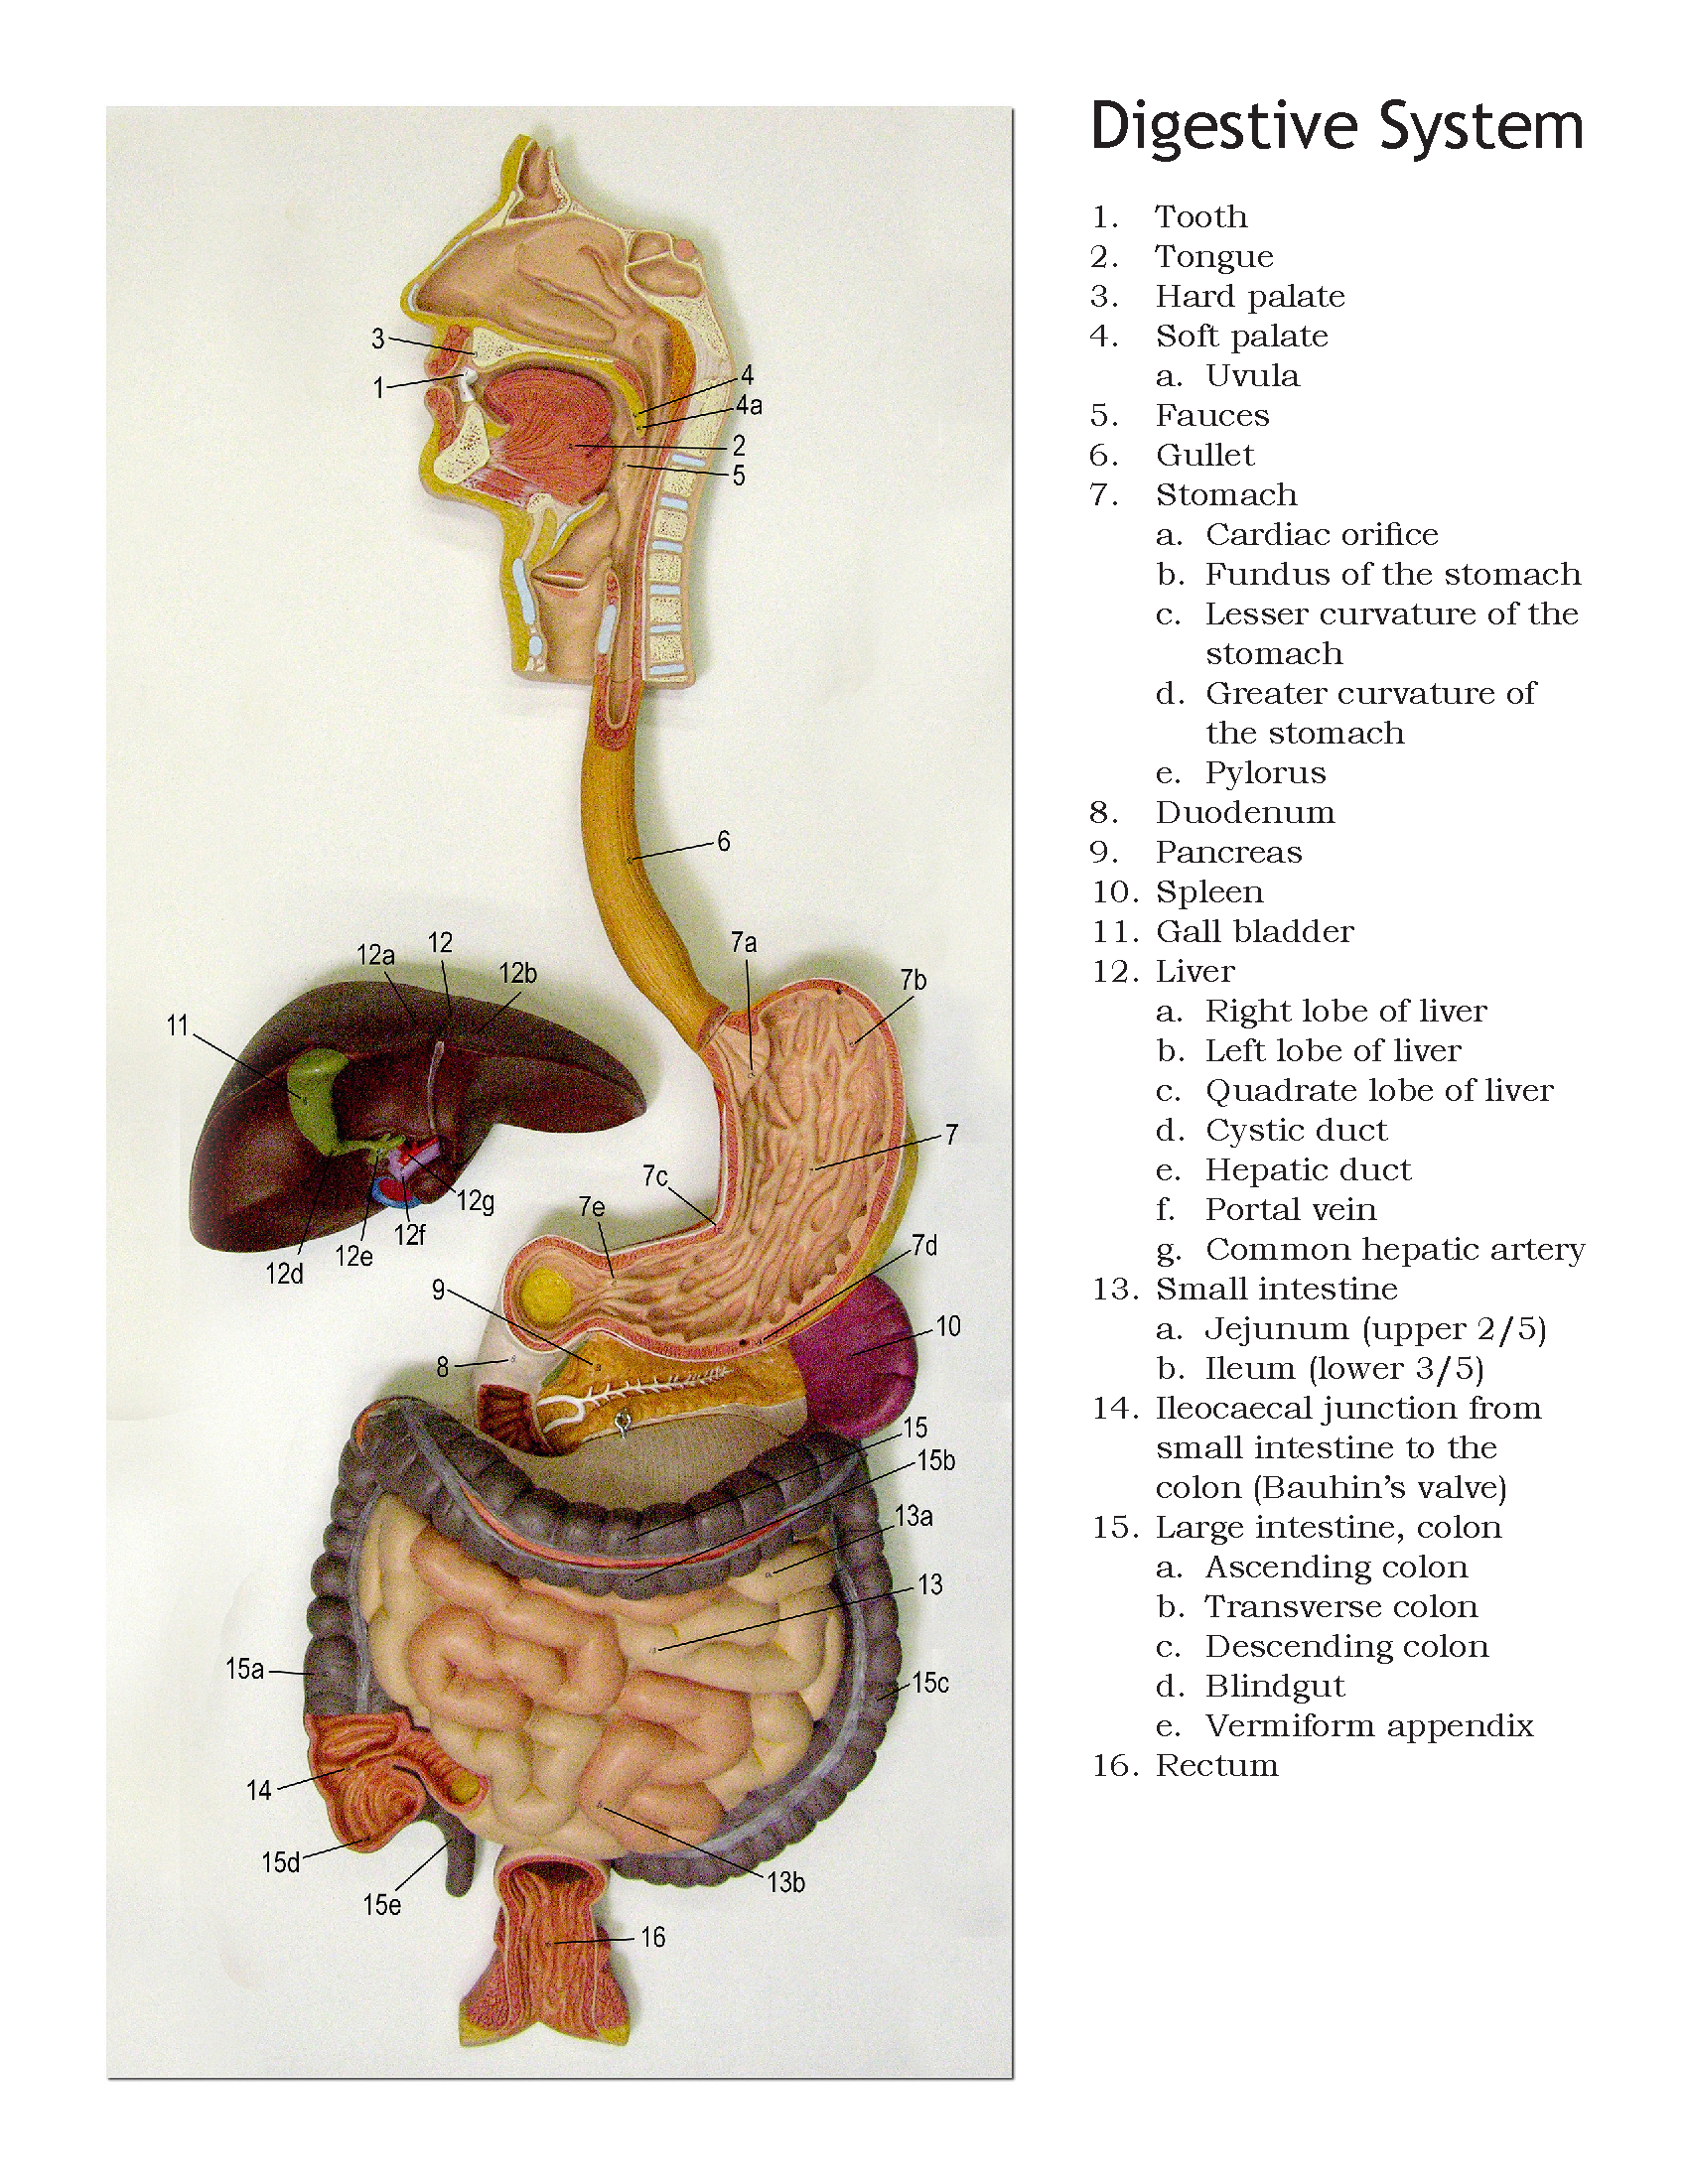 Diagram Of Digestive System Human Digestive System Diagram Anatomical Models Ball State